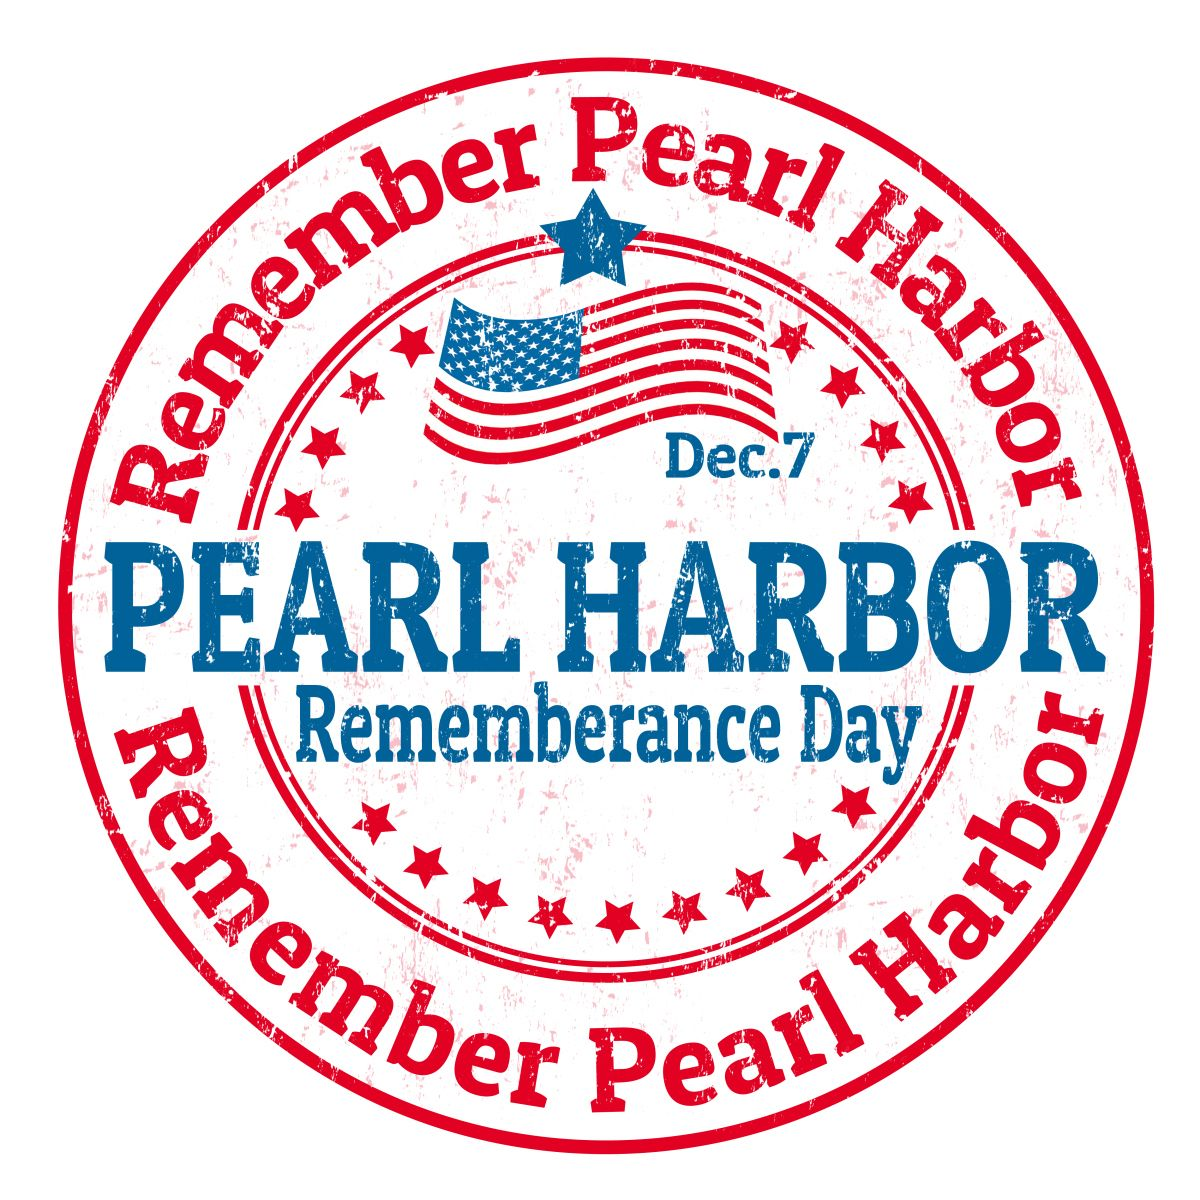 December 7th National Pearl Harbor Remembrance Day